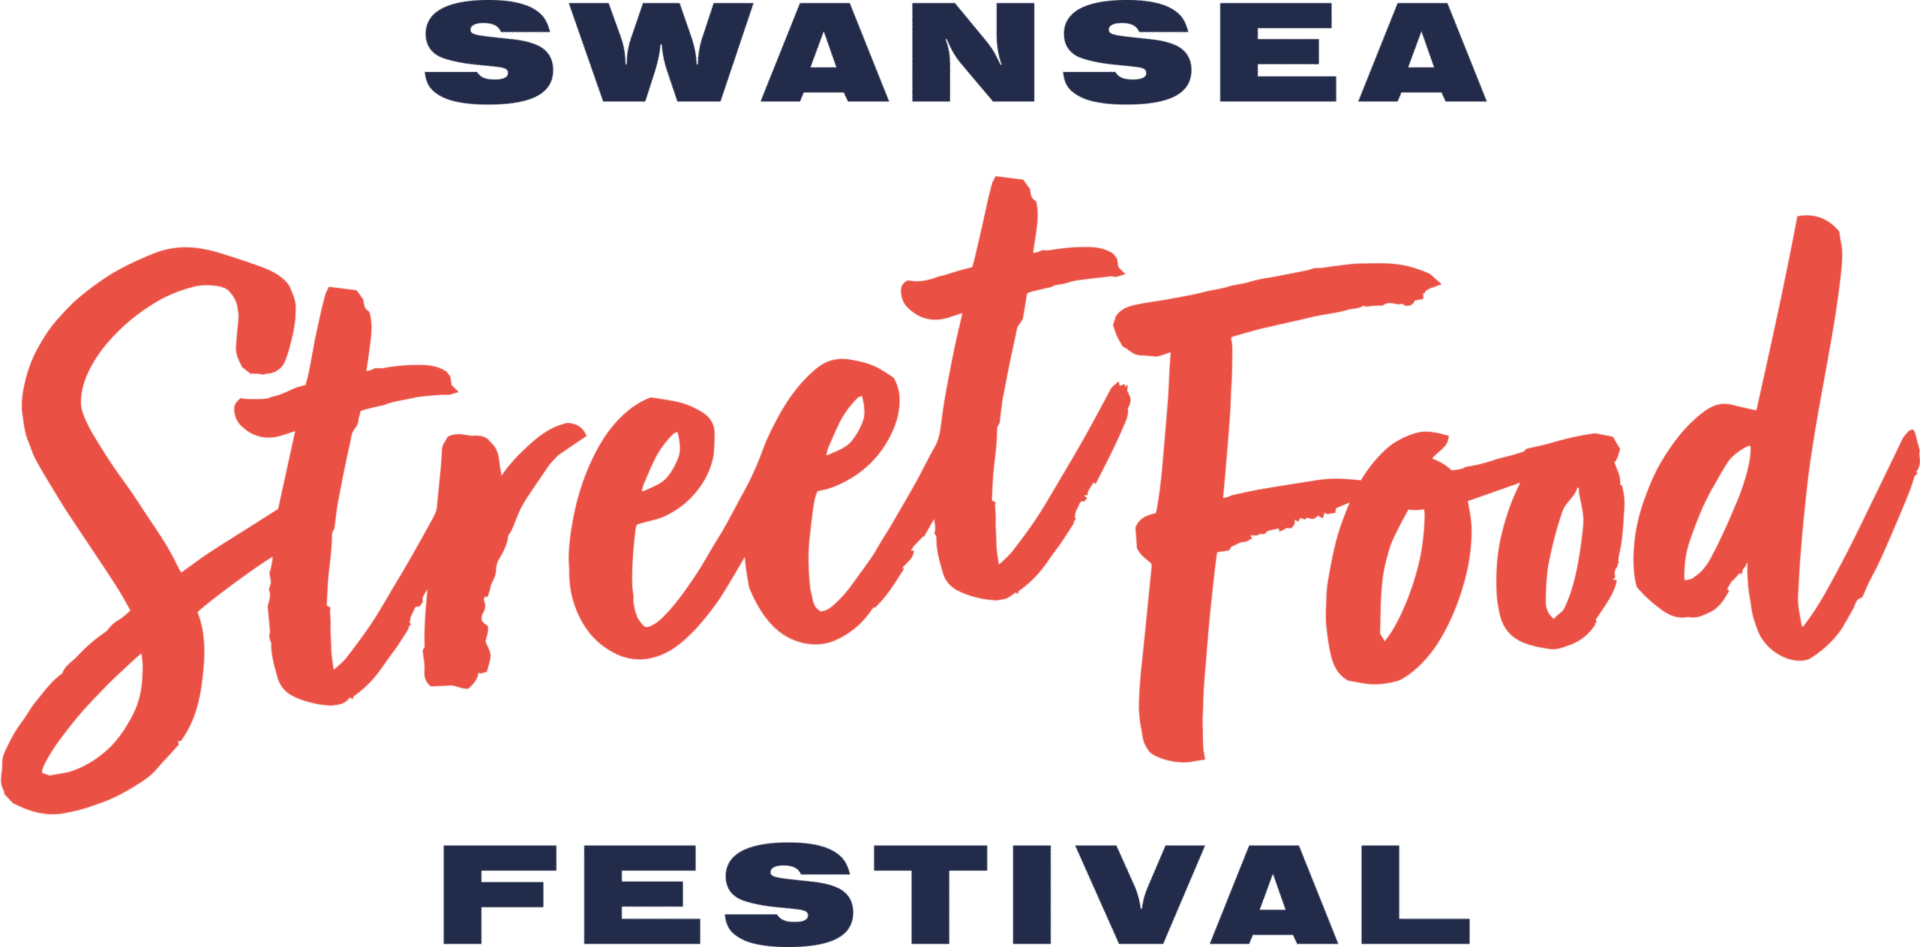 Logos Red and Blue_Swansea